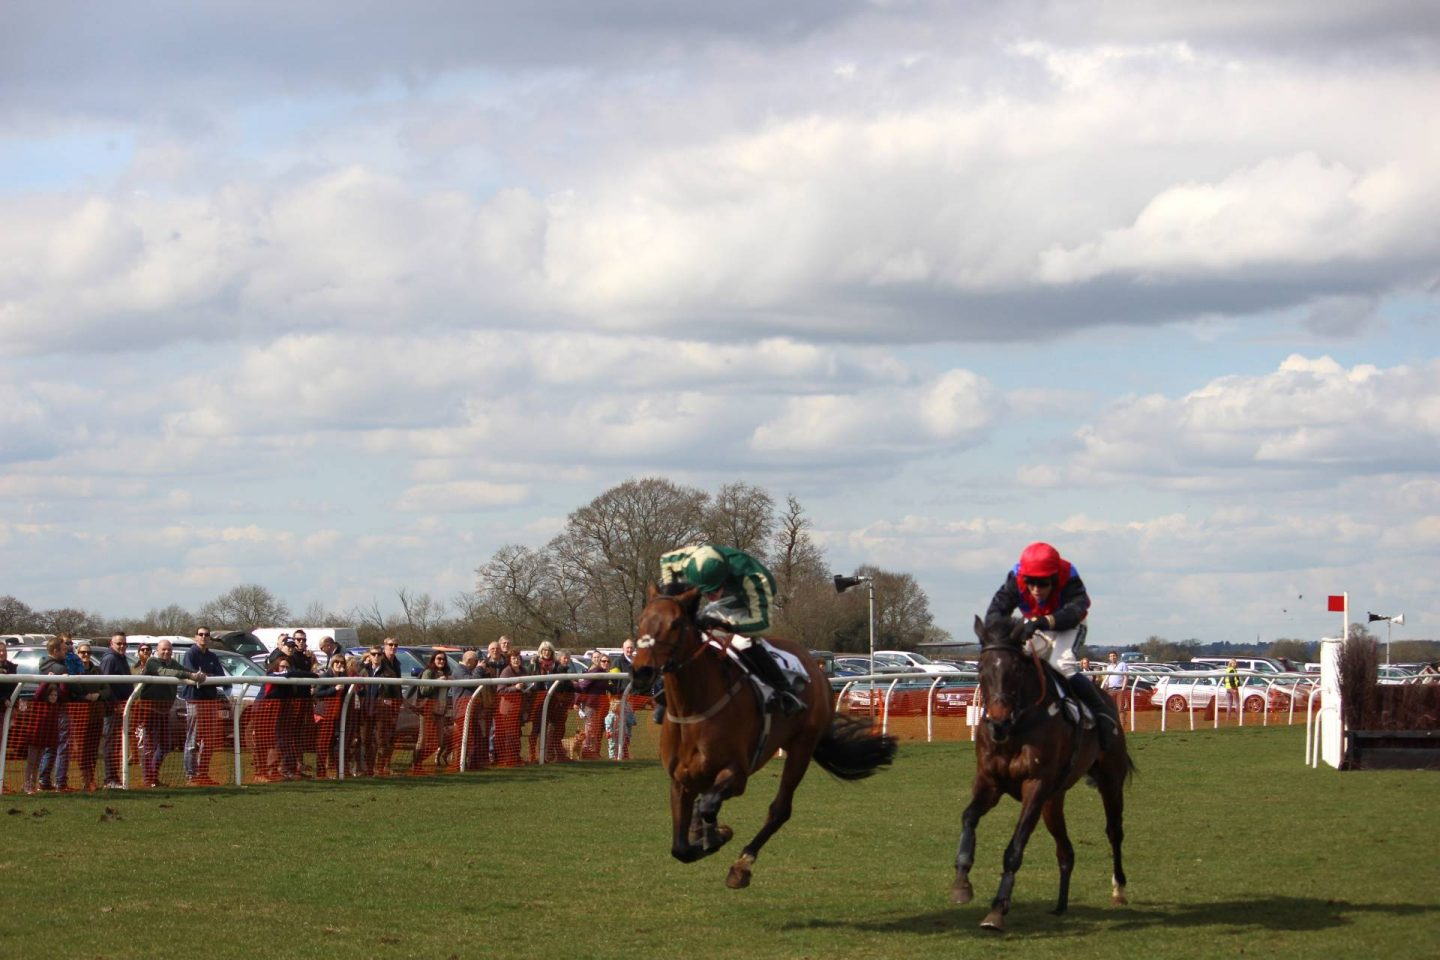 A day out at the point to point horse races